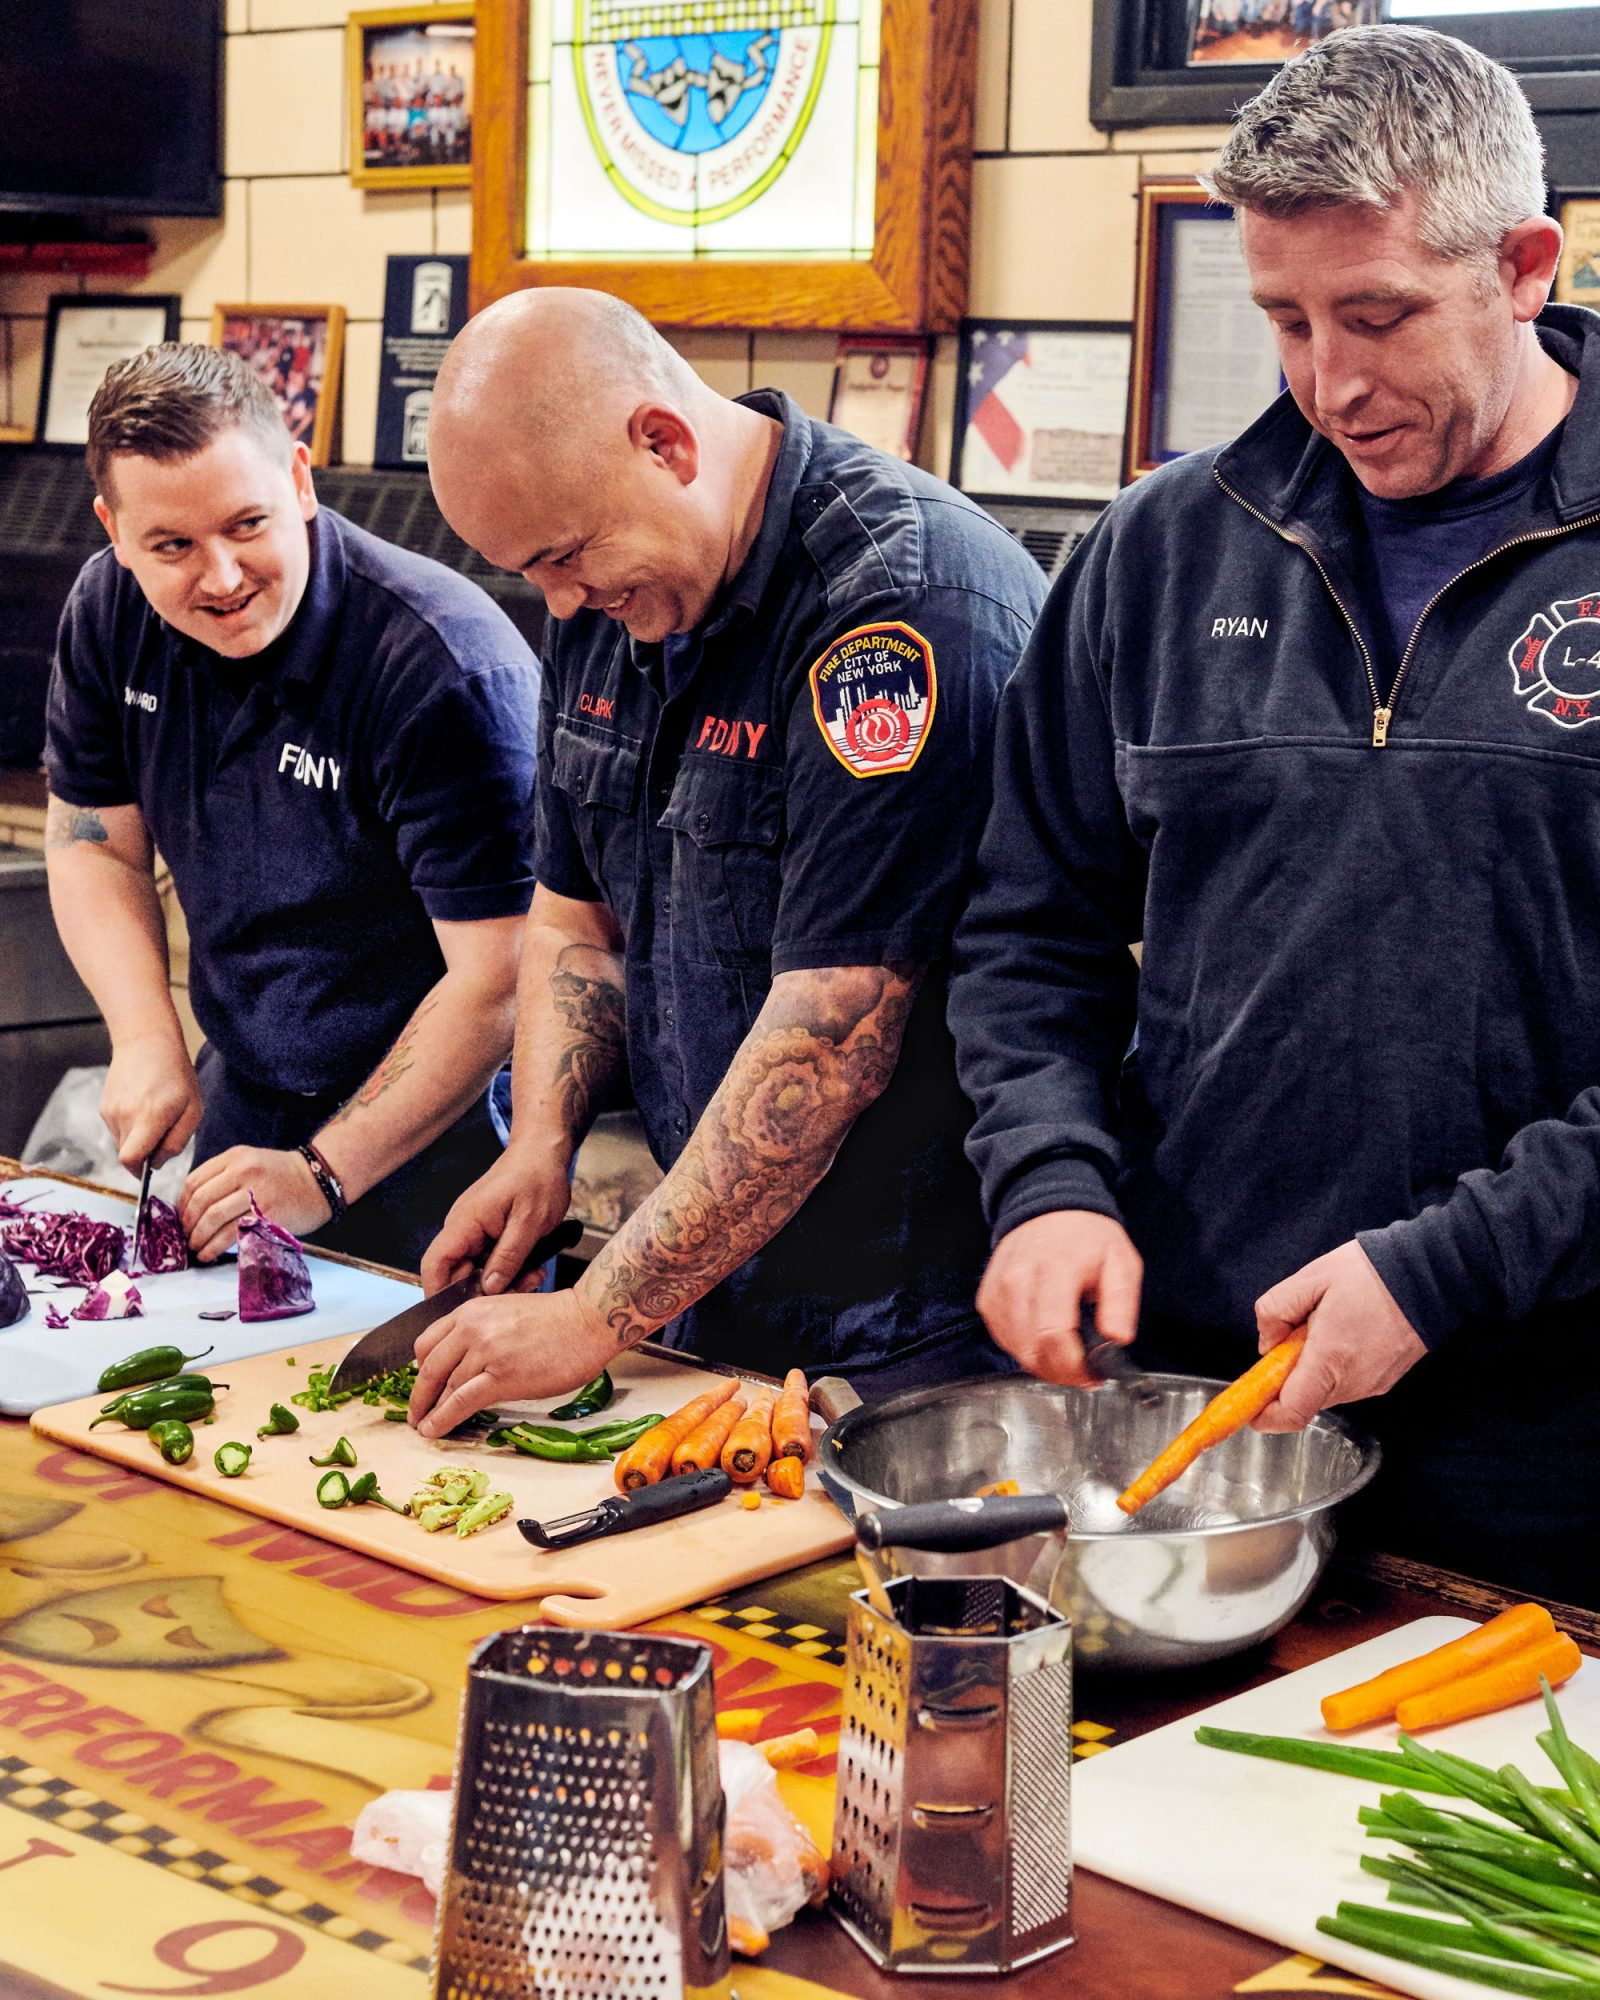 firefighters cutting and peeling vegetables